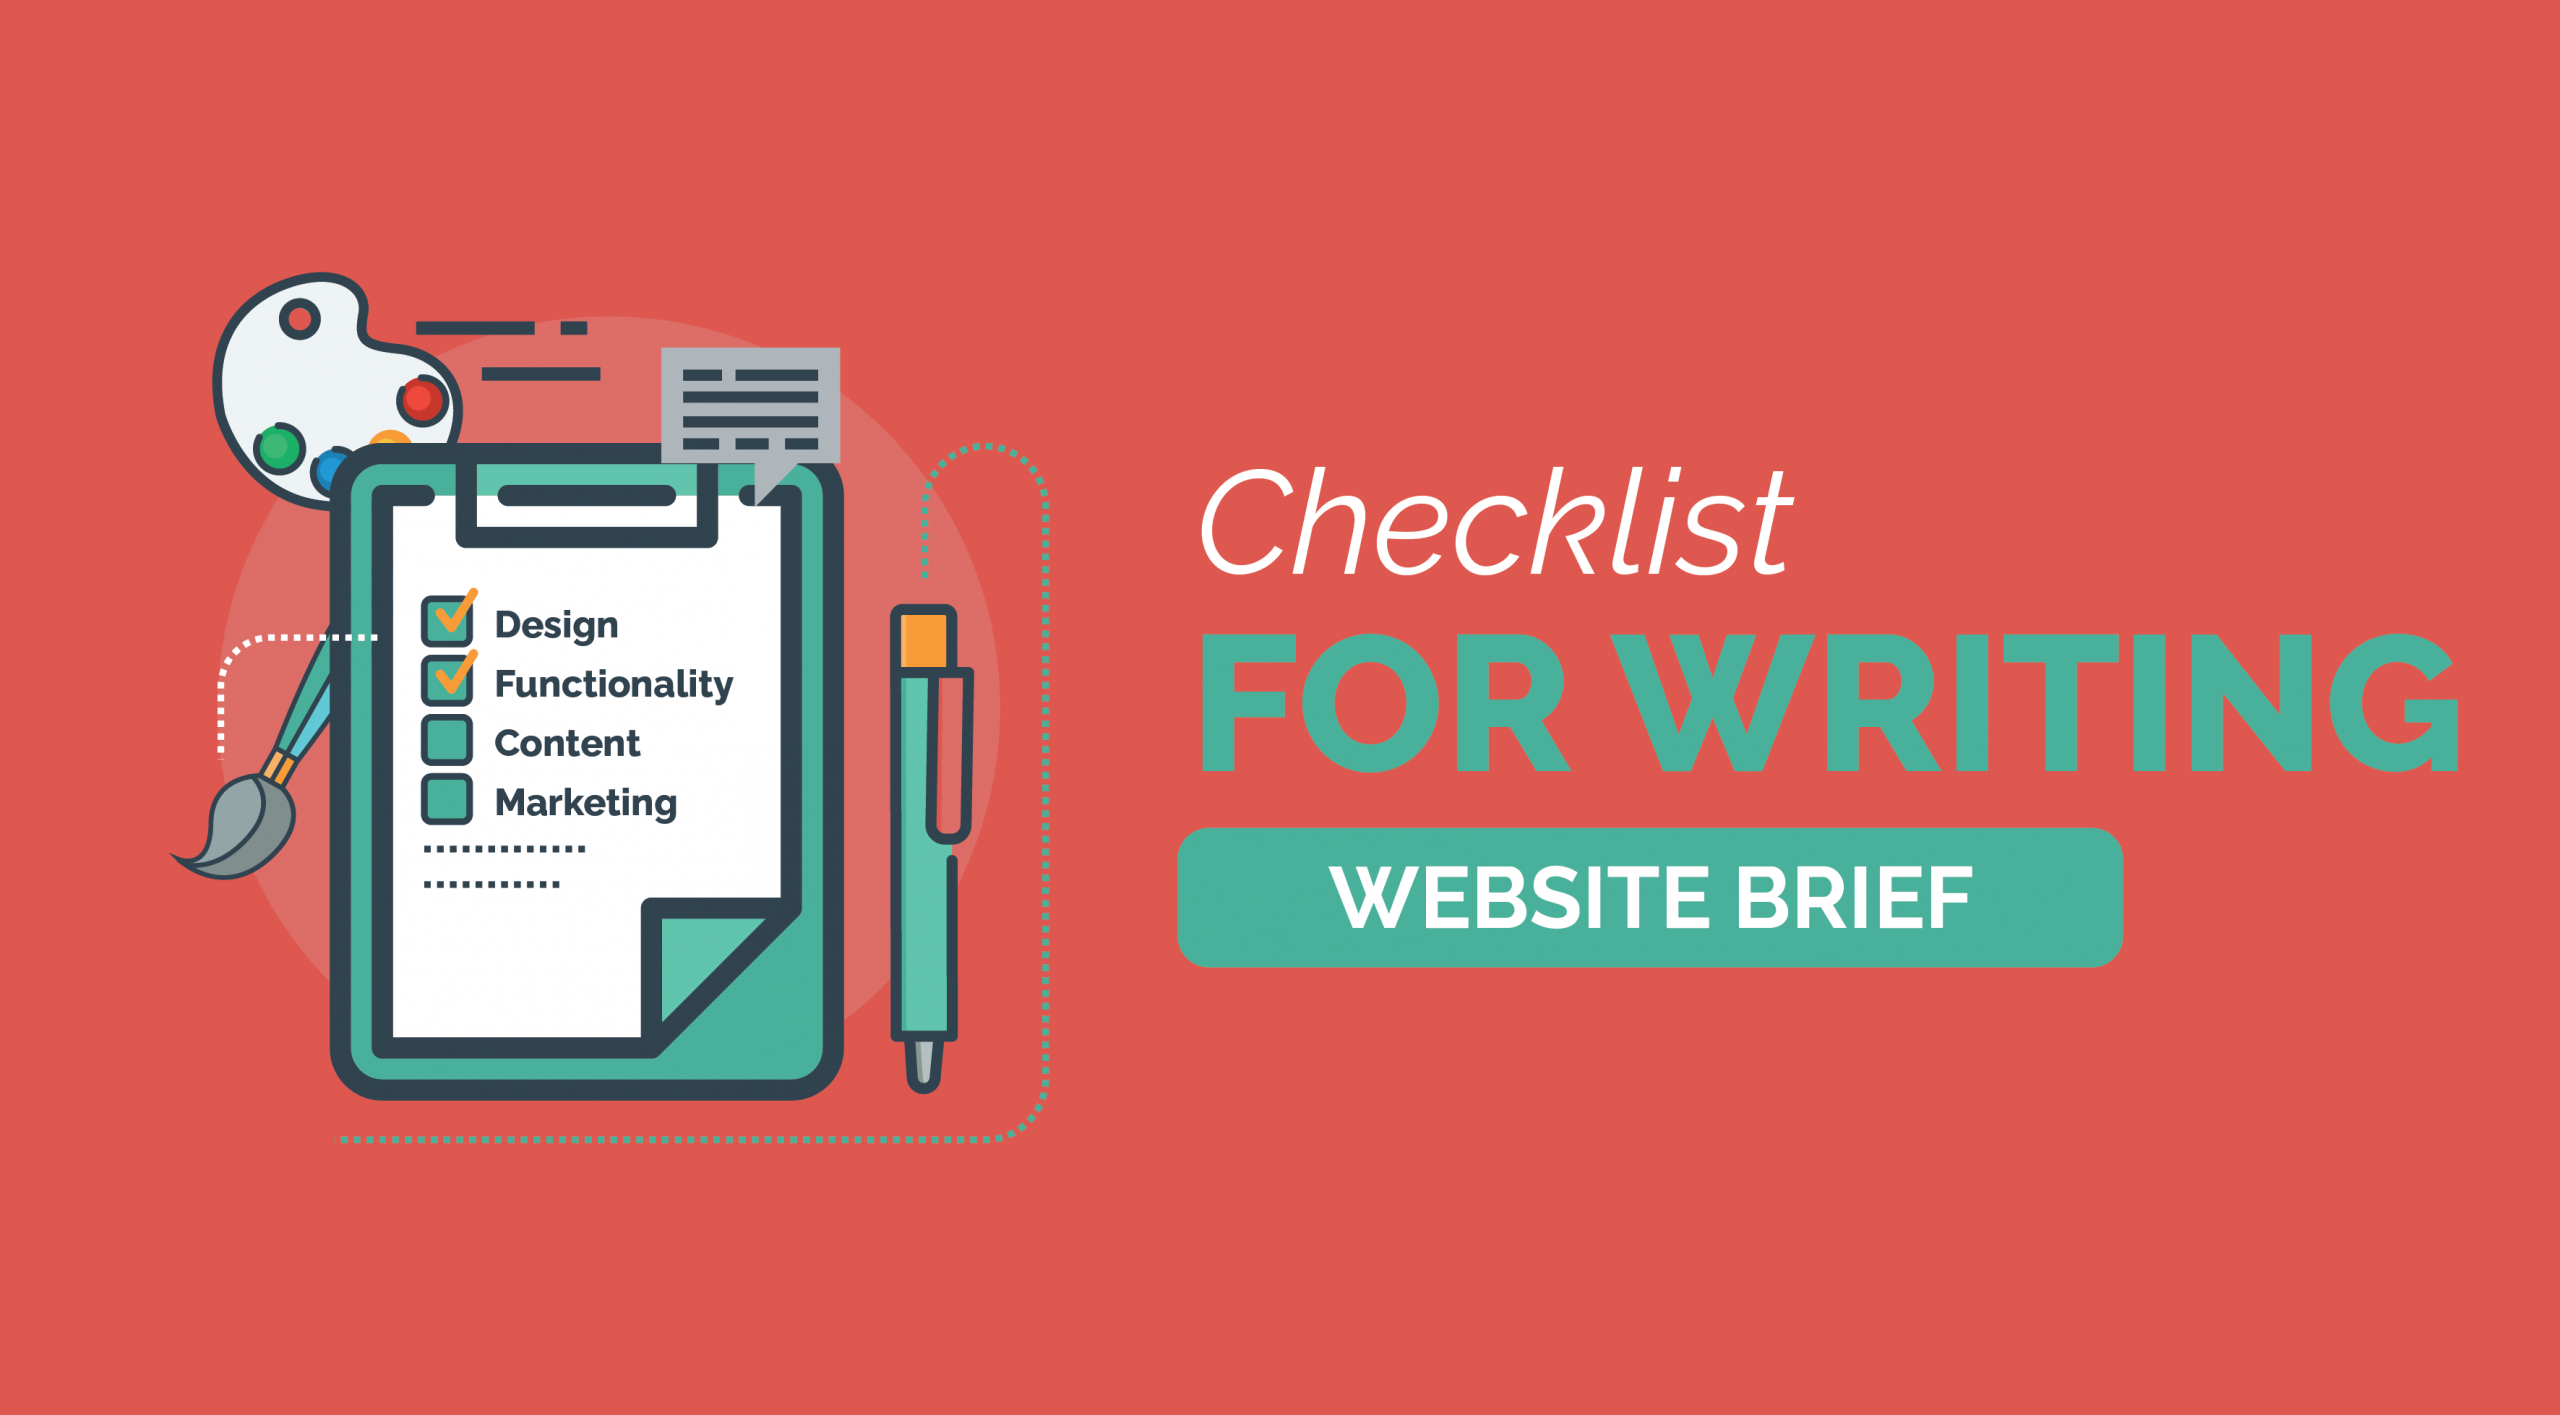 Checklist for Writing Website Brief 3